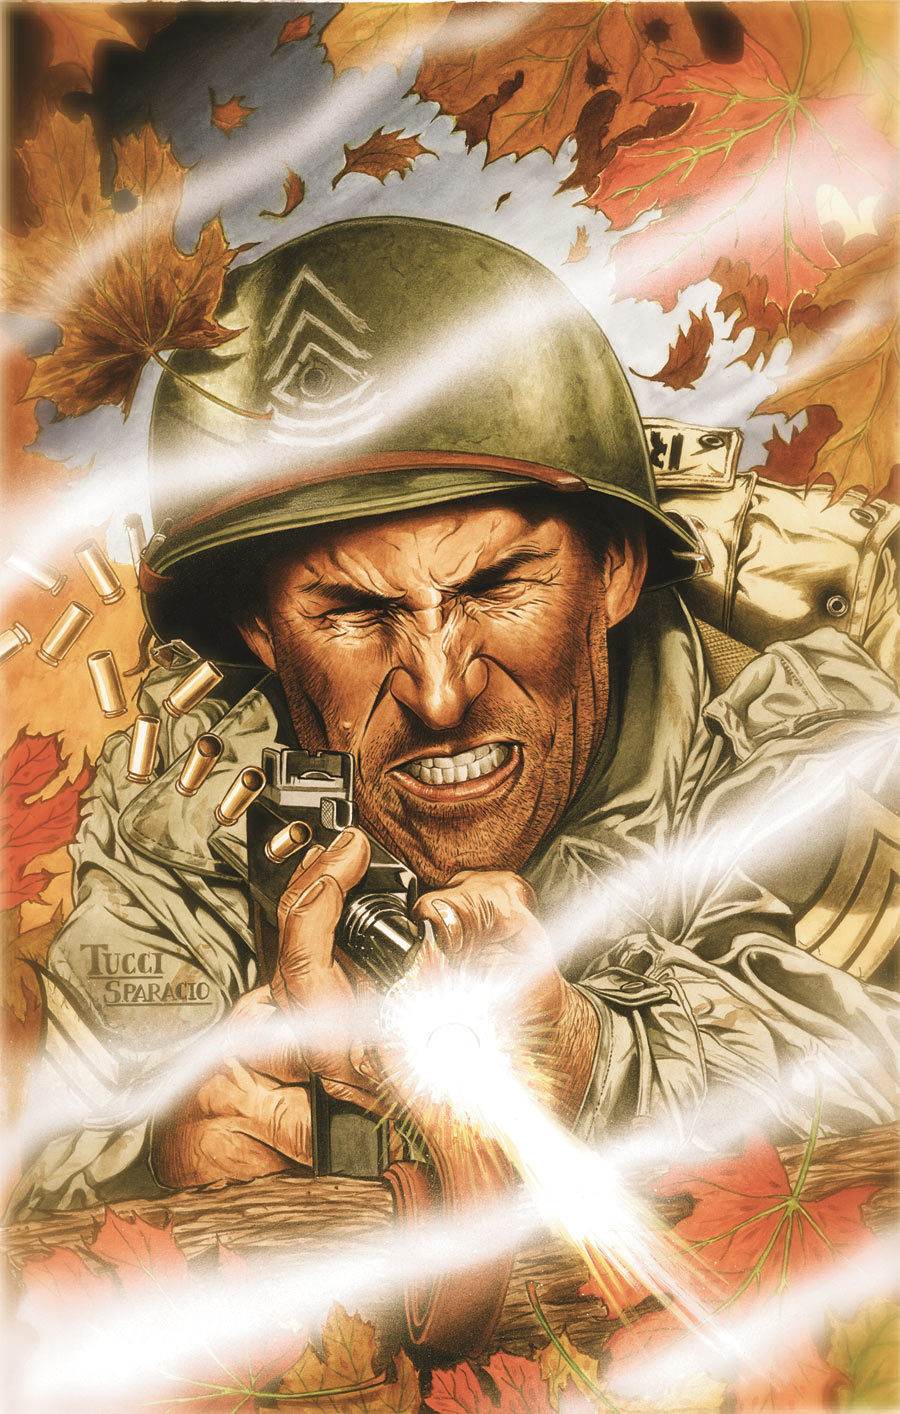 Sgt. Rock: The Lost Battalion Vol 1 3